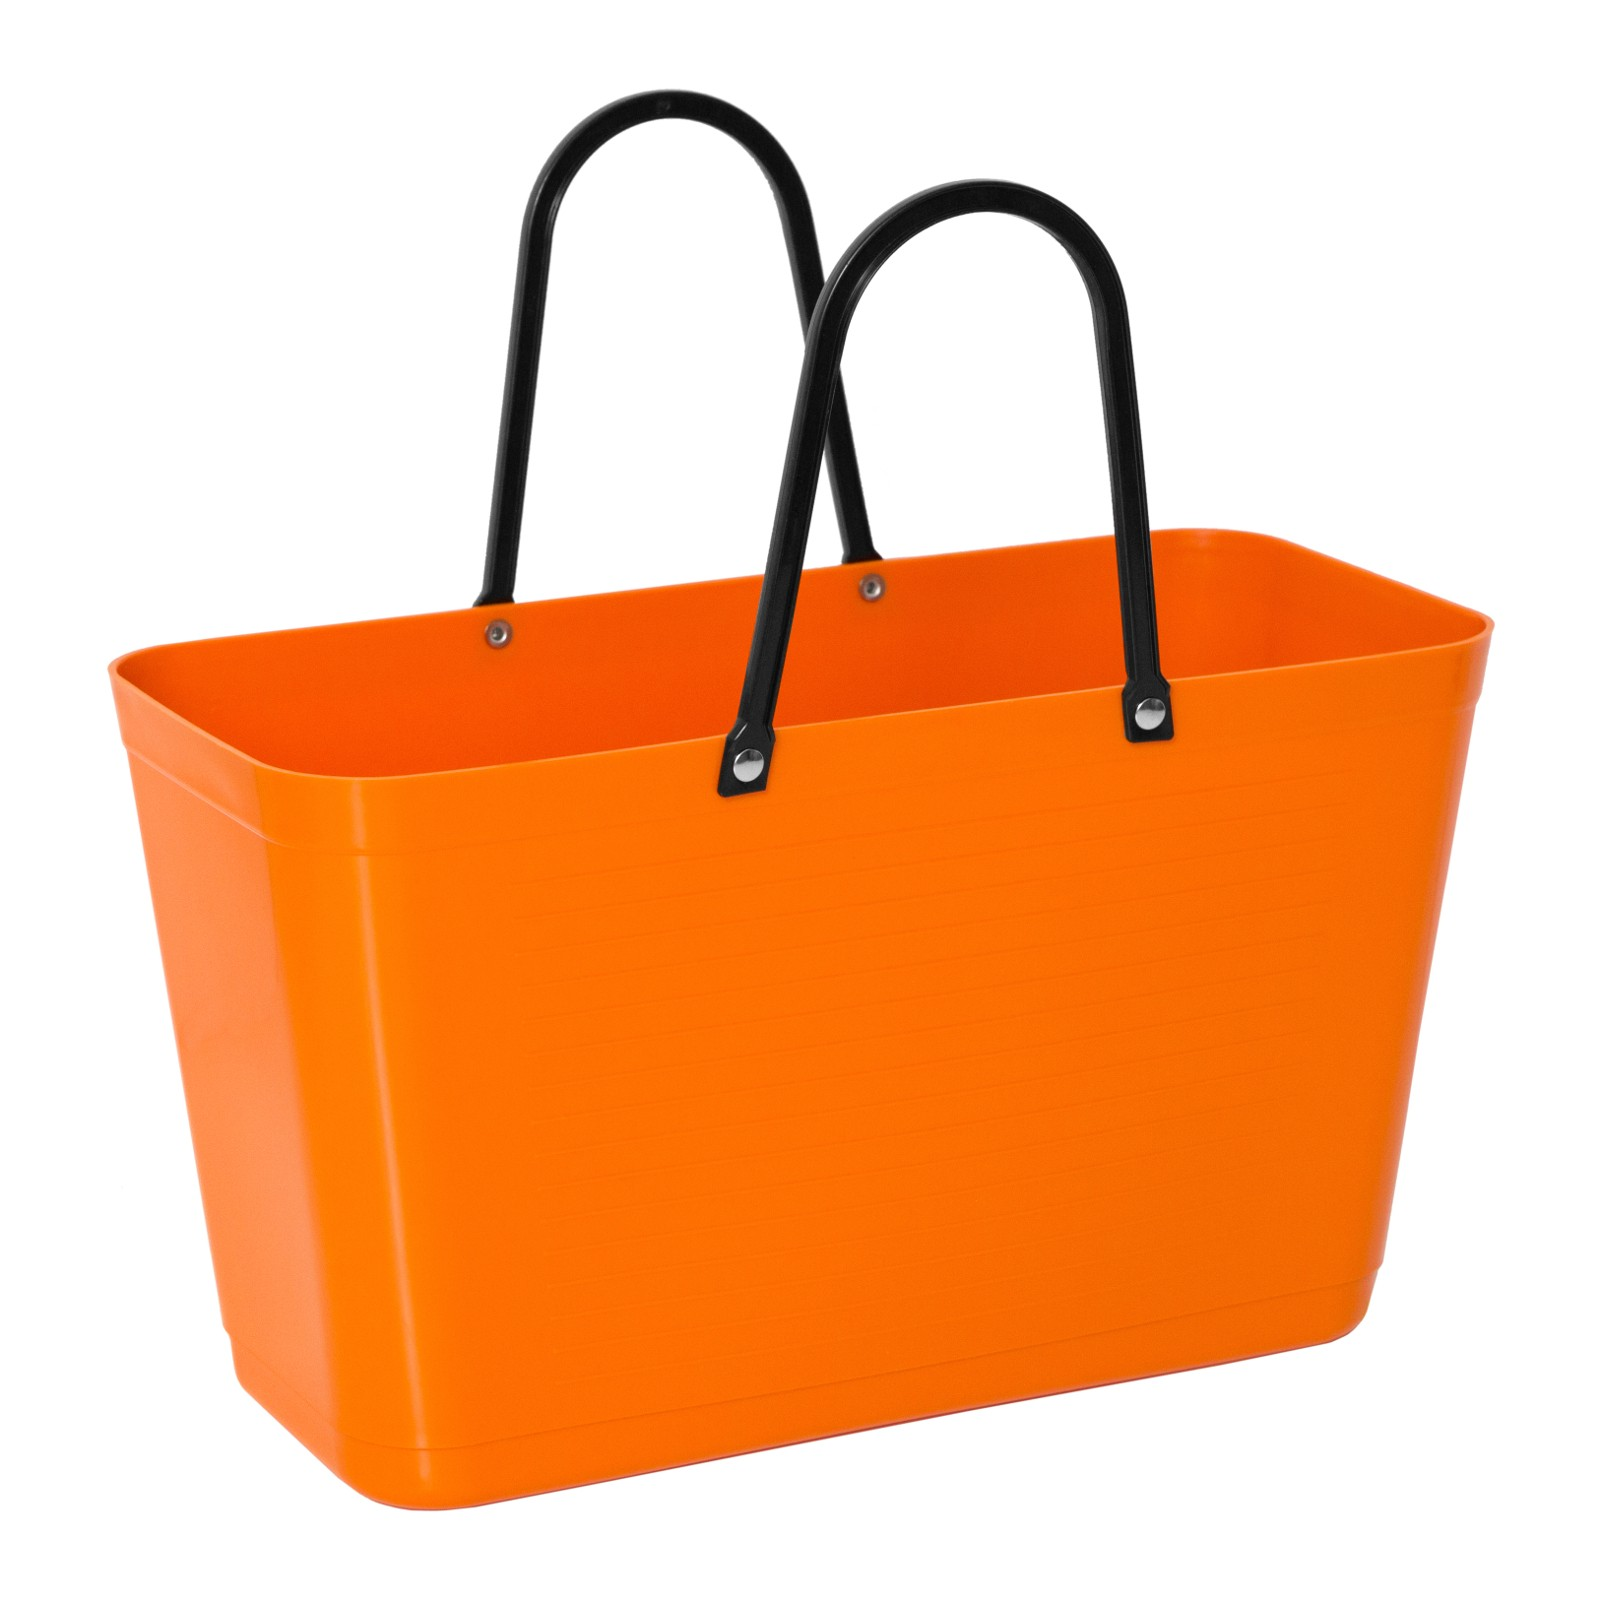 hinza 024-hinza-bag-large-orange